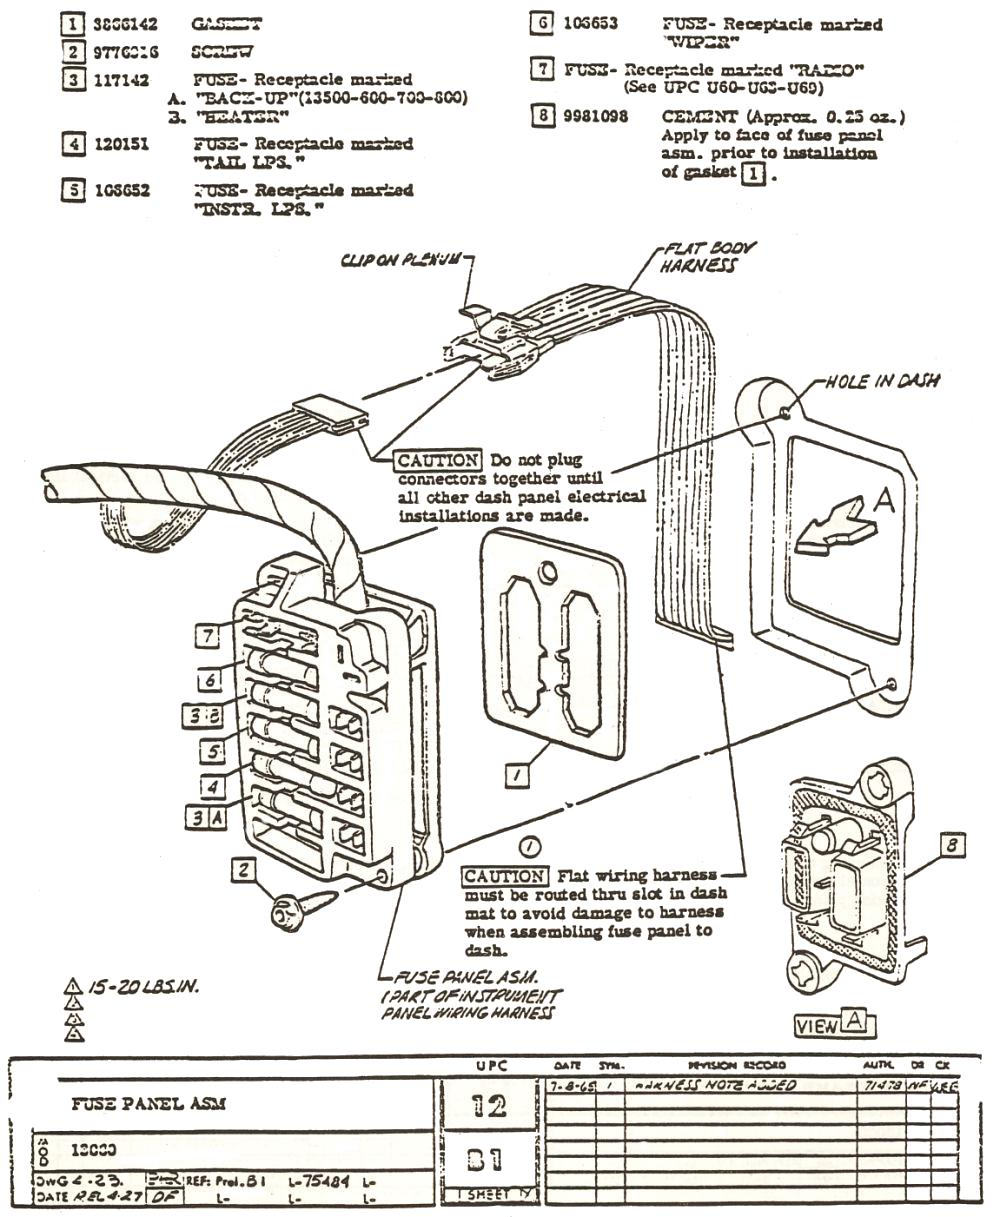 hight resolution of 1967 gto fuse box wiring diagram wiring diagram z41967 gto fuse box diagram wiring diagrams list